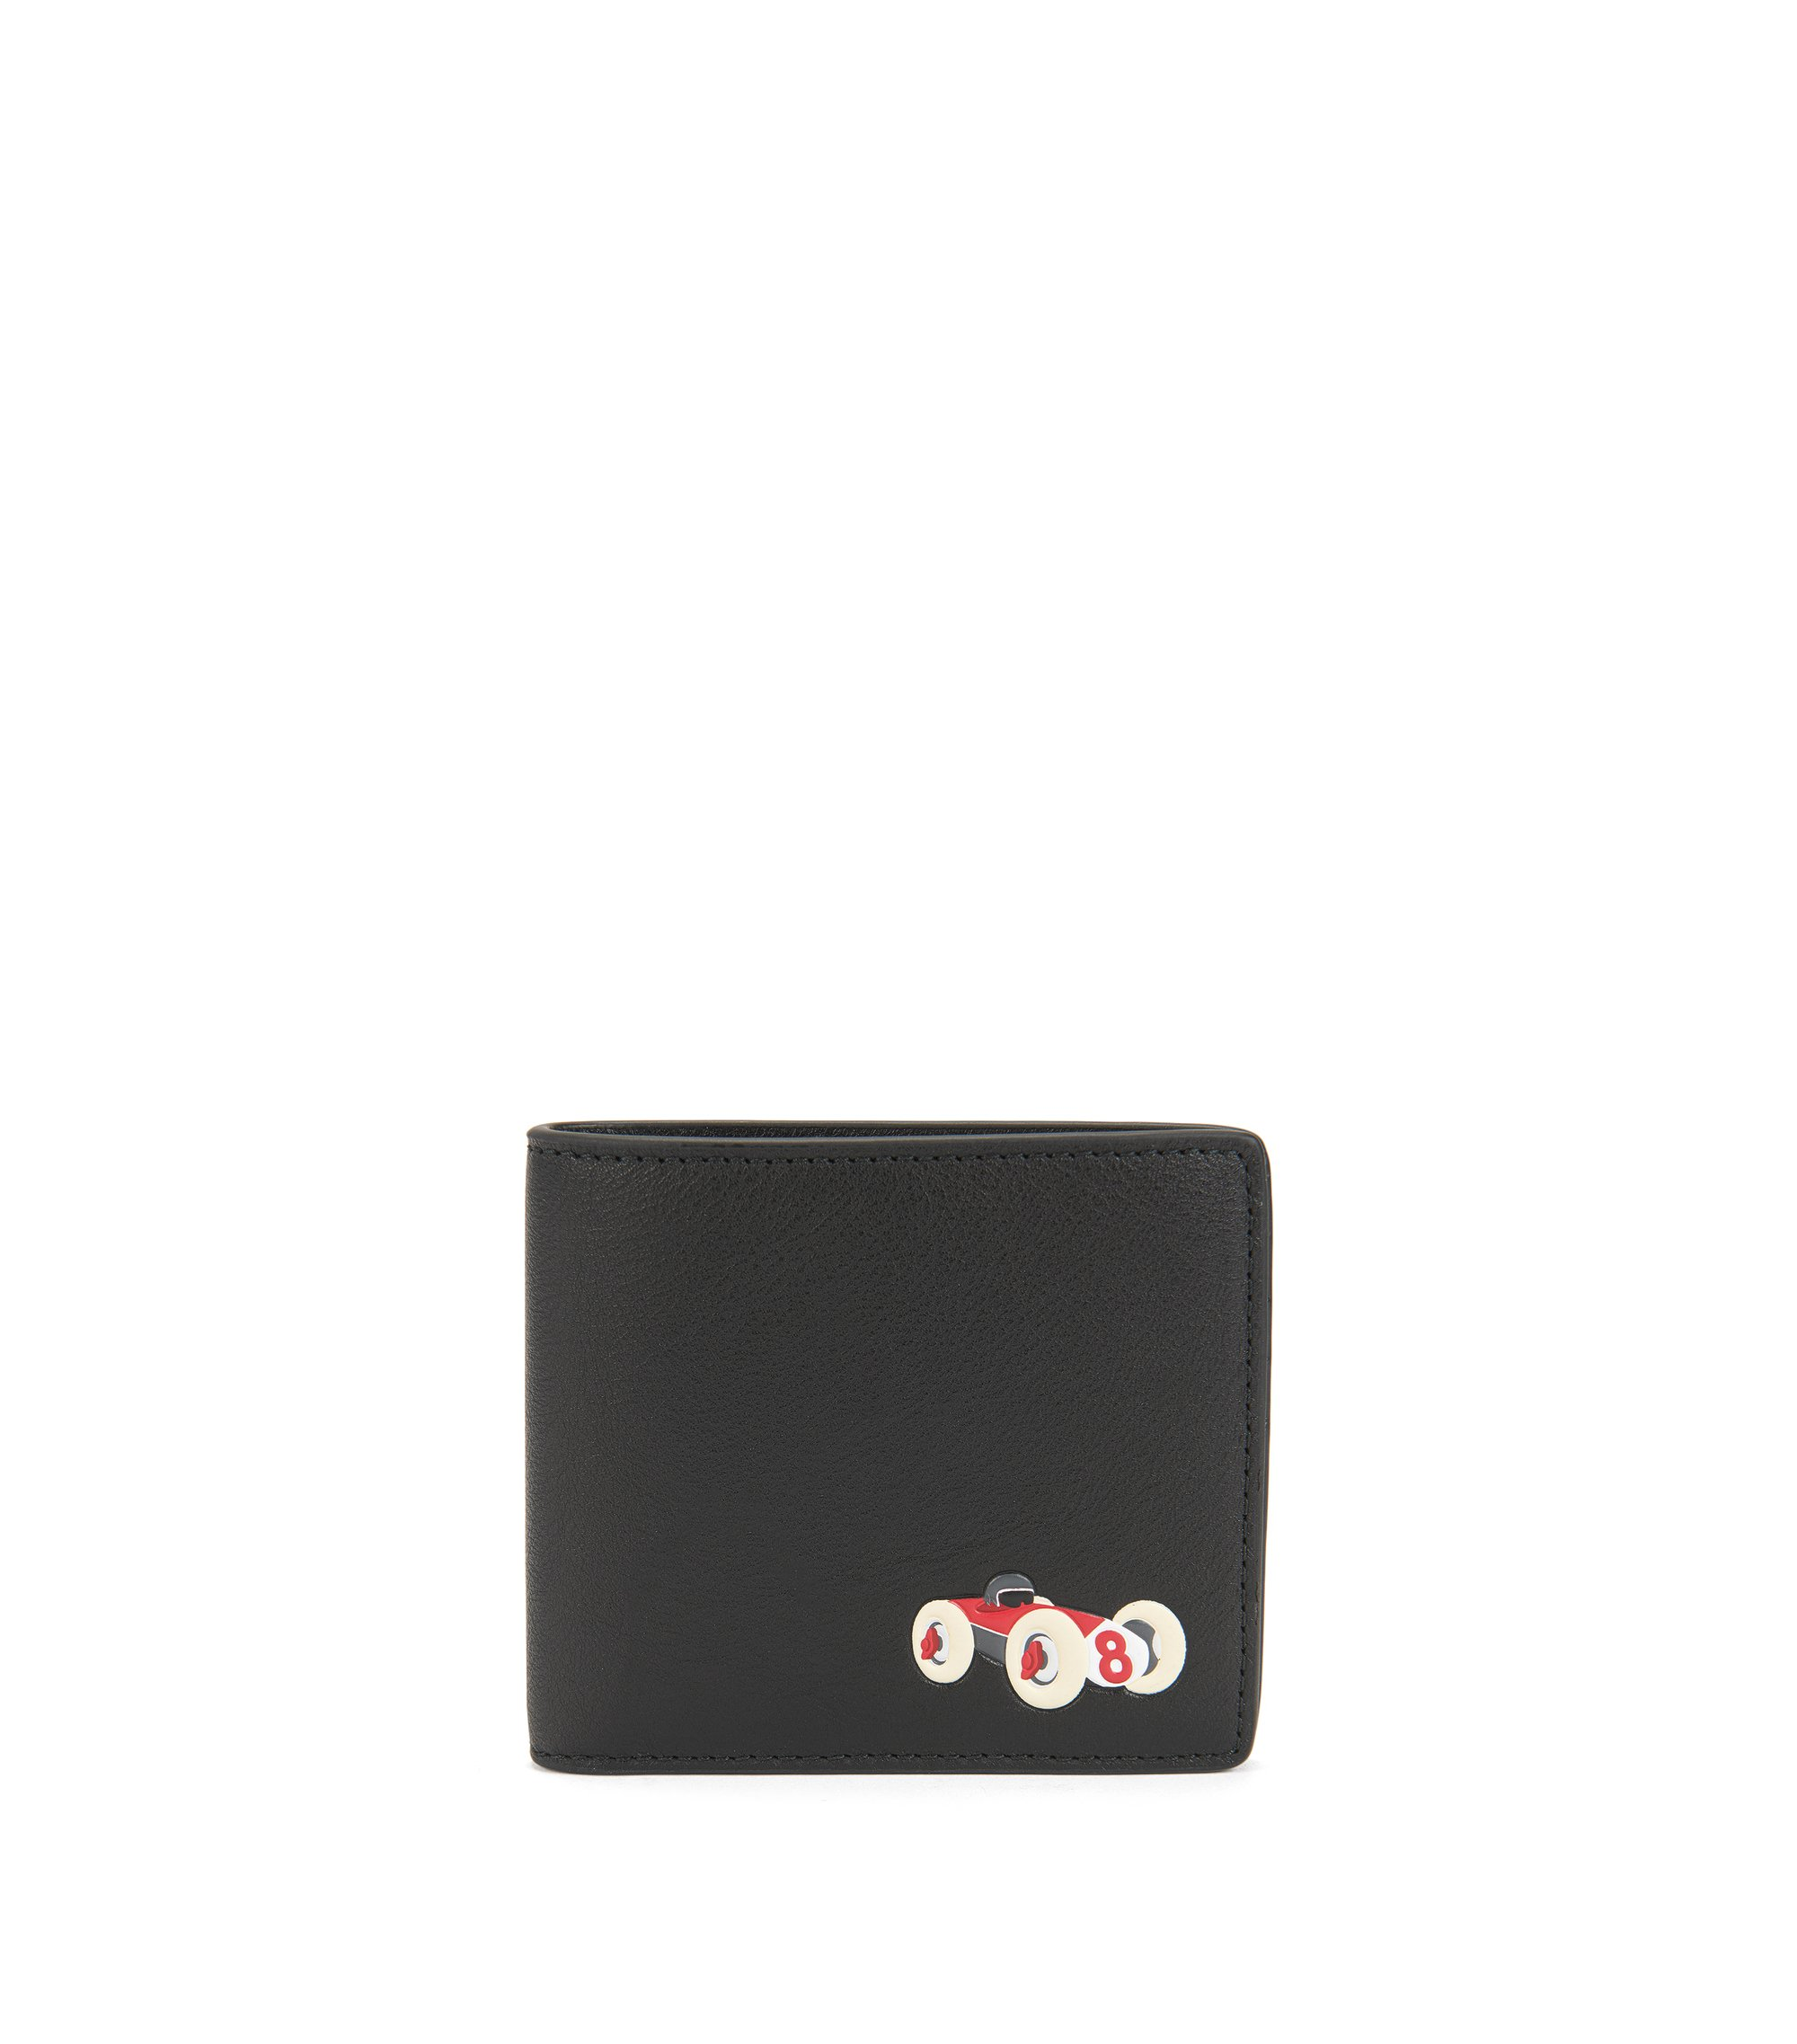 Leather bifold wallet with race car motif, Black